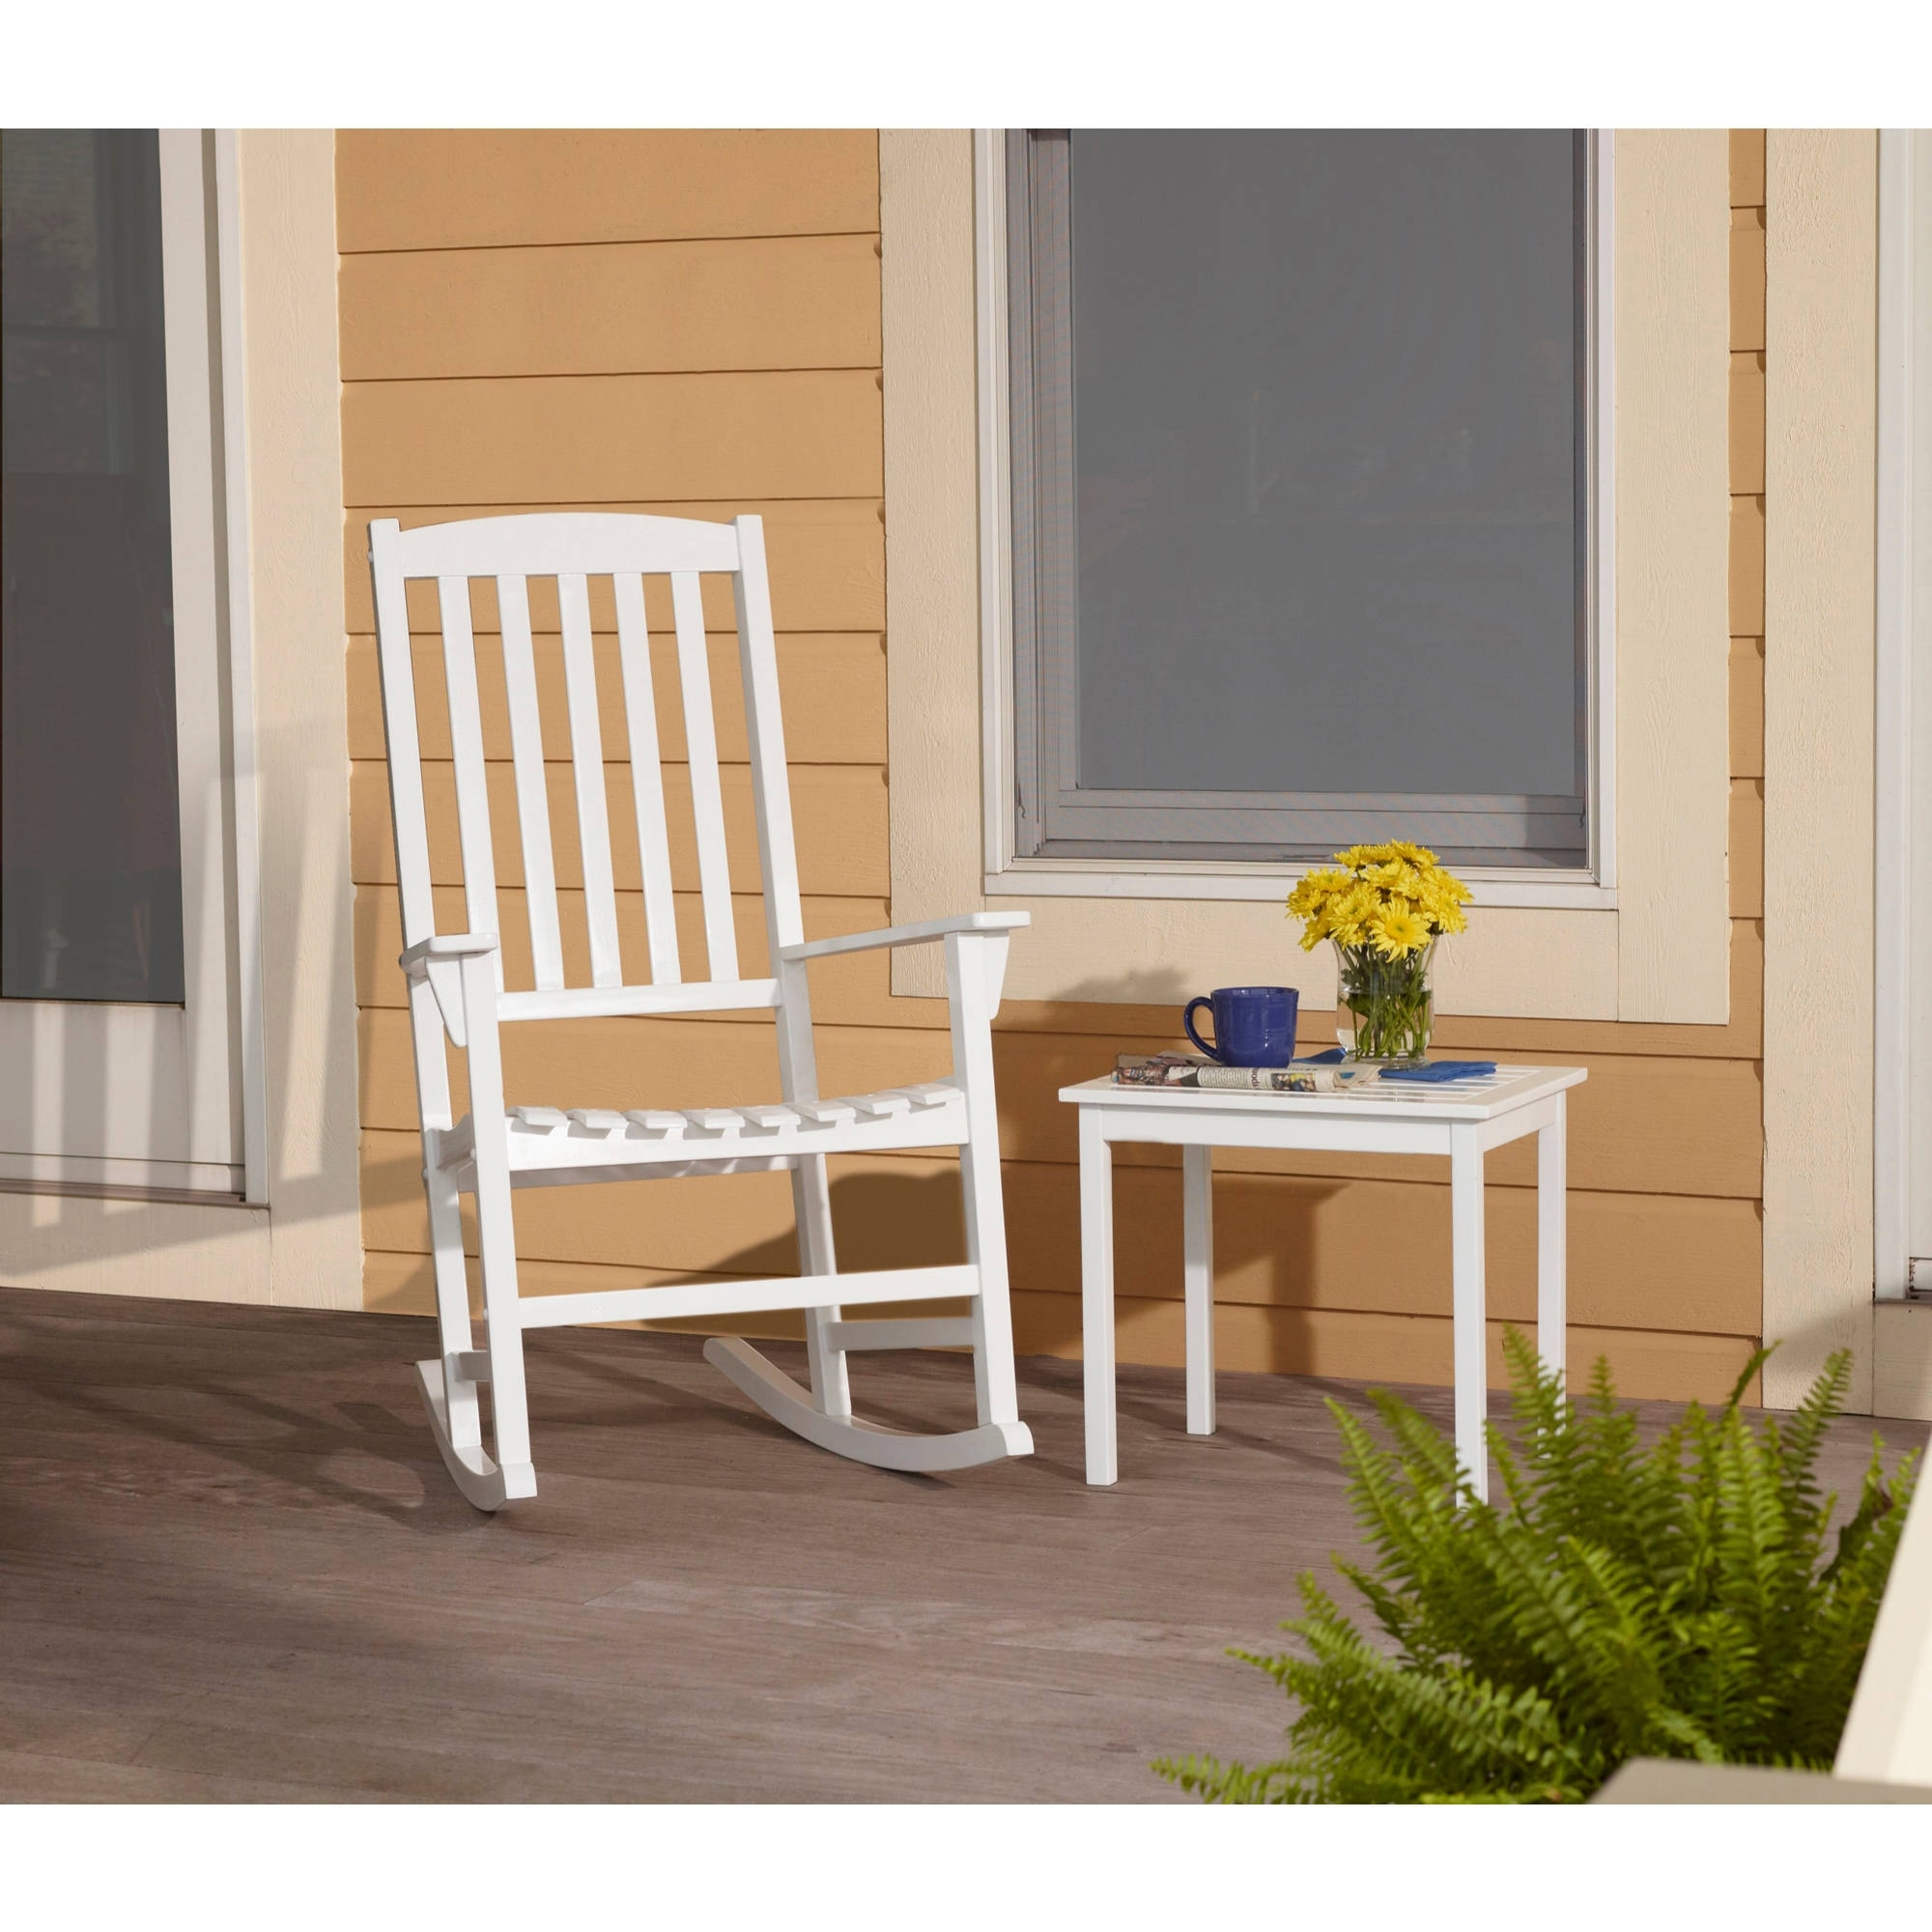 Famous Mainstays Outdoor Rocking Chair, White – Walmart With Regard To Outdoor Rocking Chairs With Table (View 10 of 15)